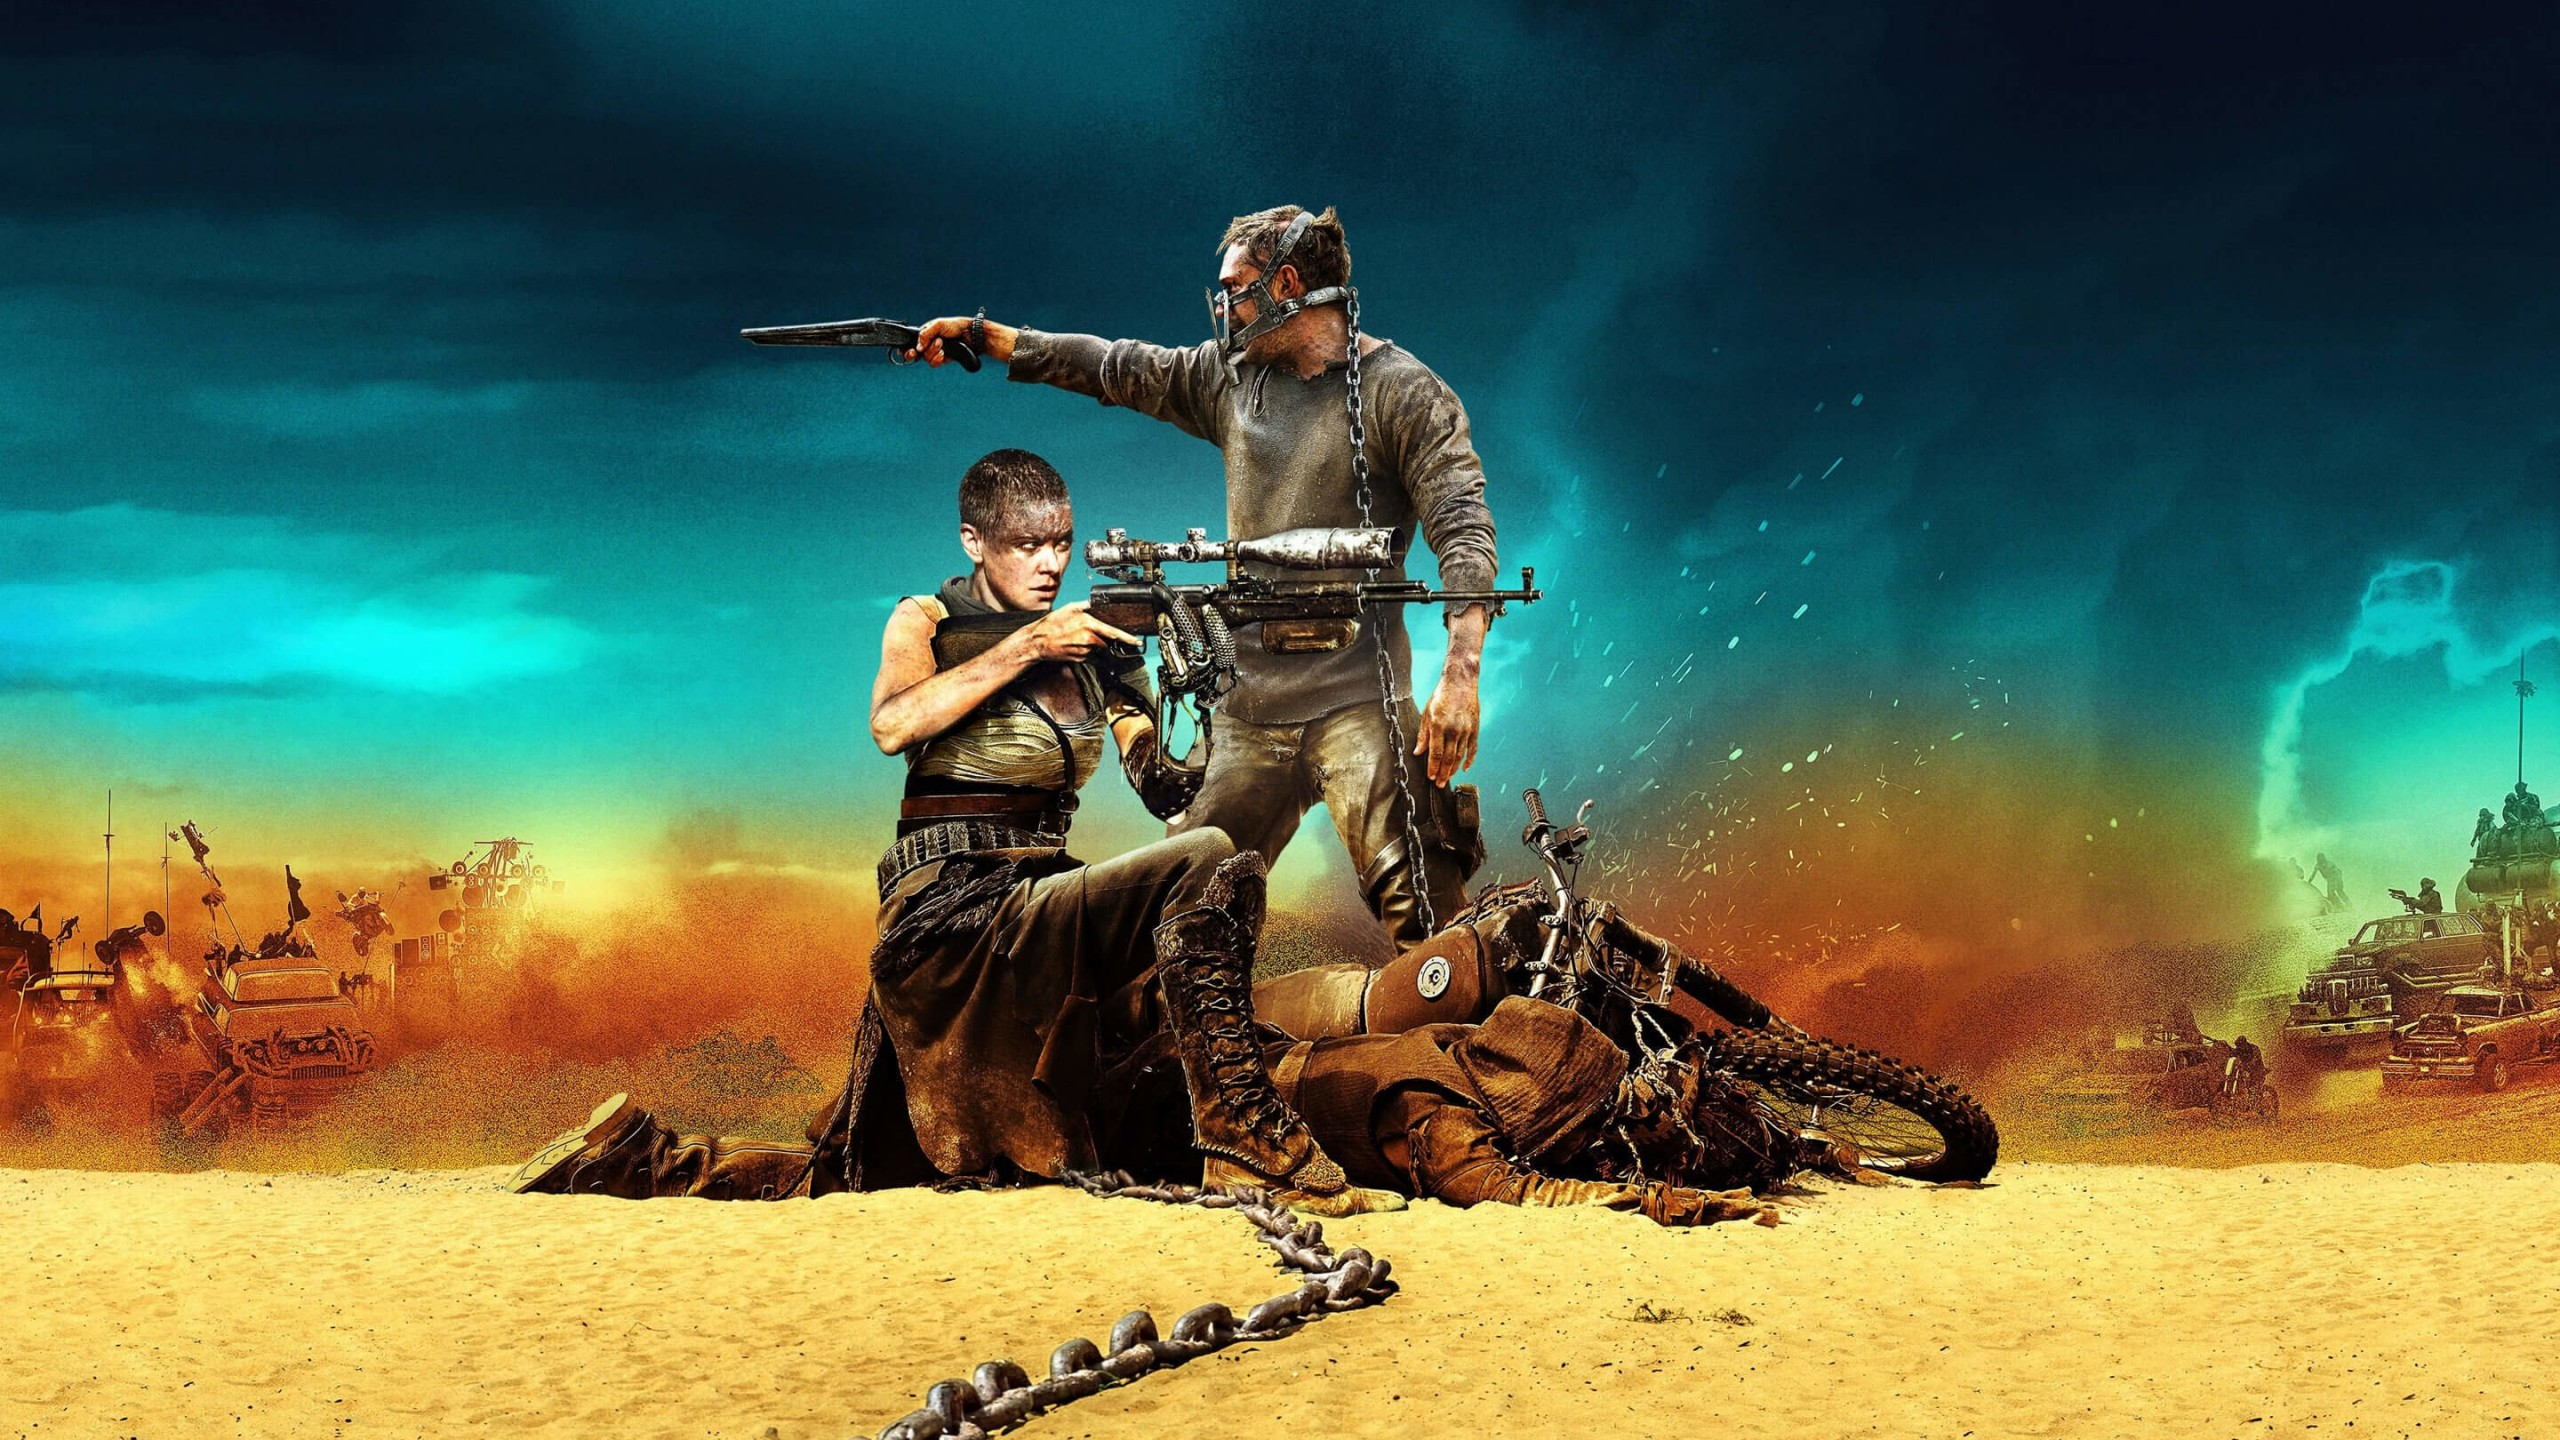 Mad Max: Fury Road Movie (2015) Wallpaper for Social Media YouTube Channel Art